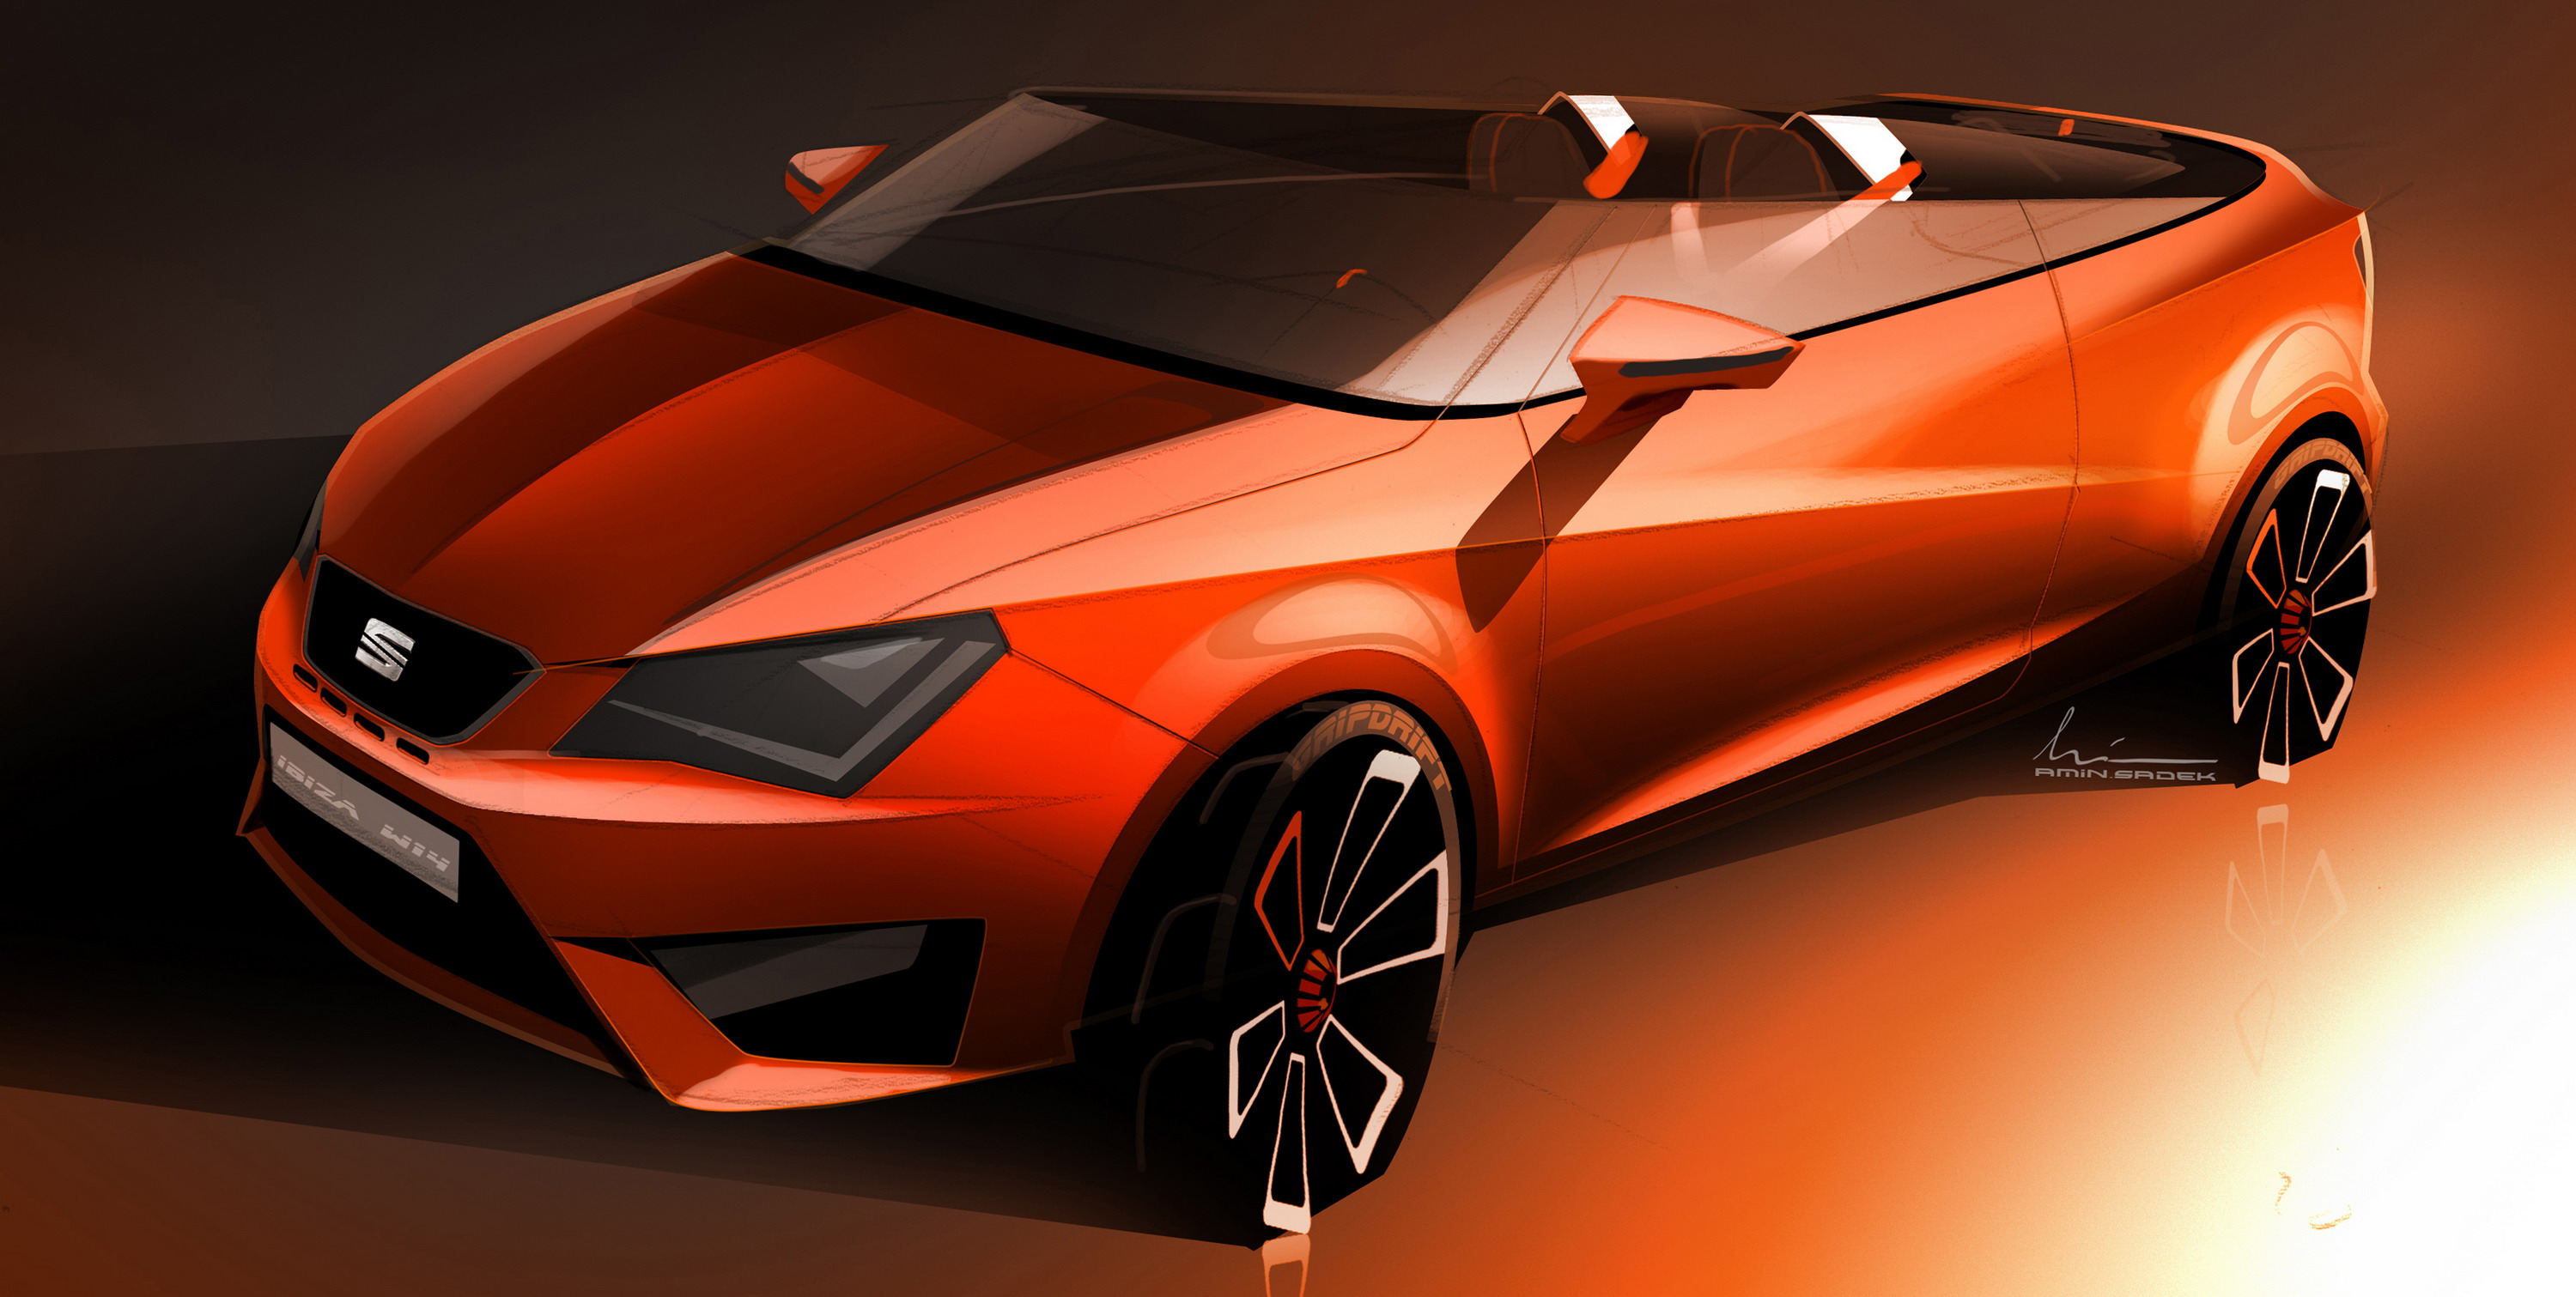 2014 seat ibiza cupster concept review gallery top speed. Black Bedroom Furniture Sets. Home Design Ideas